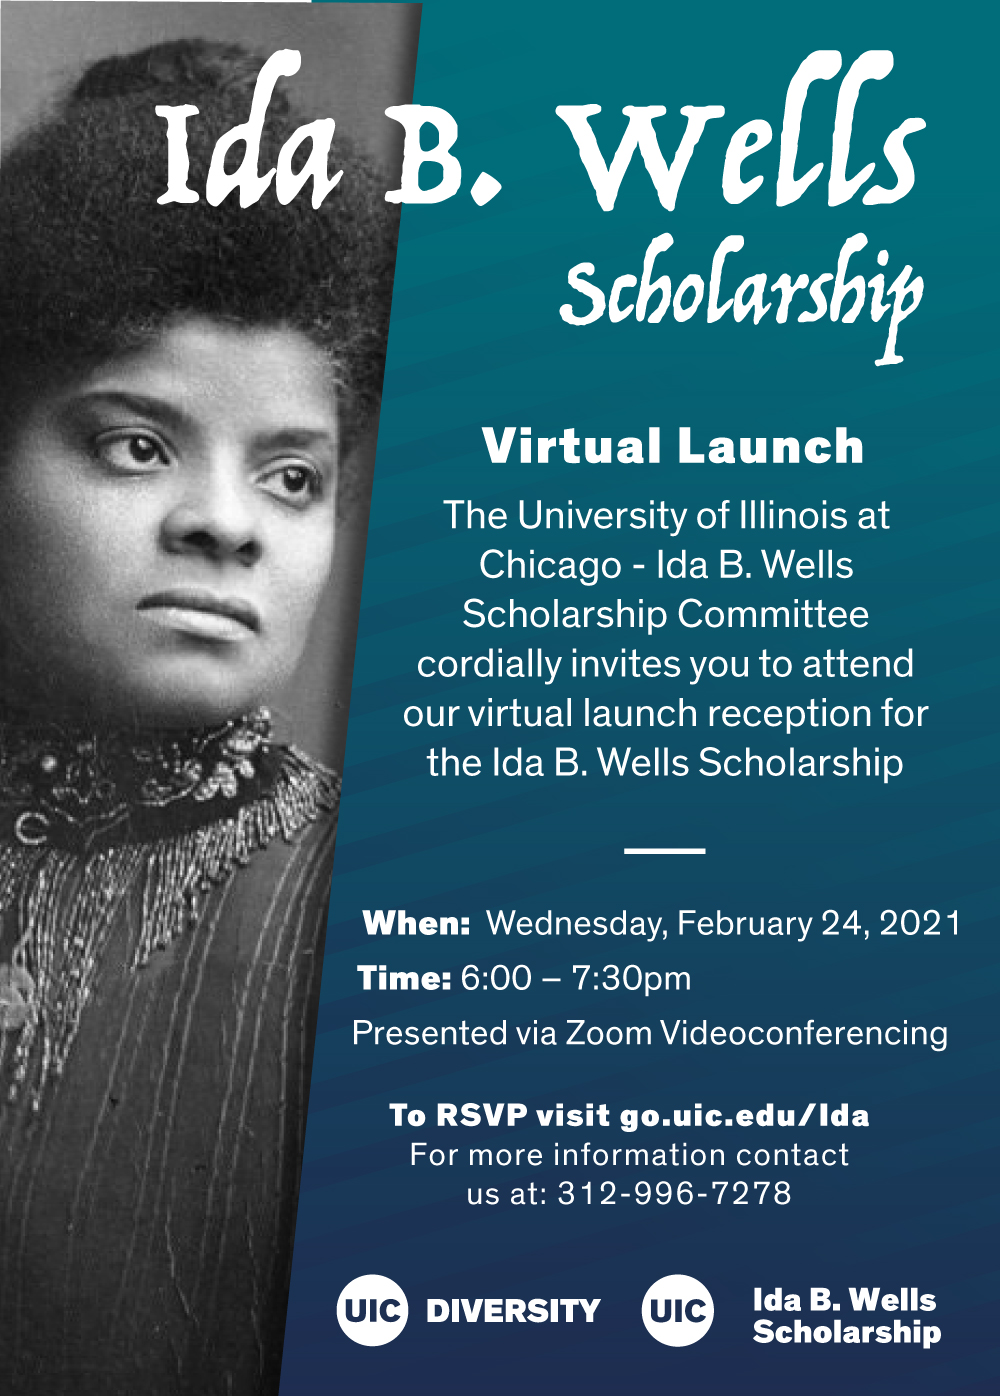 A black and white photo of Ida b wells in her youth on the left and a striped blue background on the right. Above is the event info.